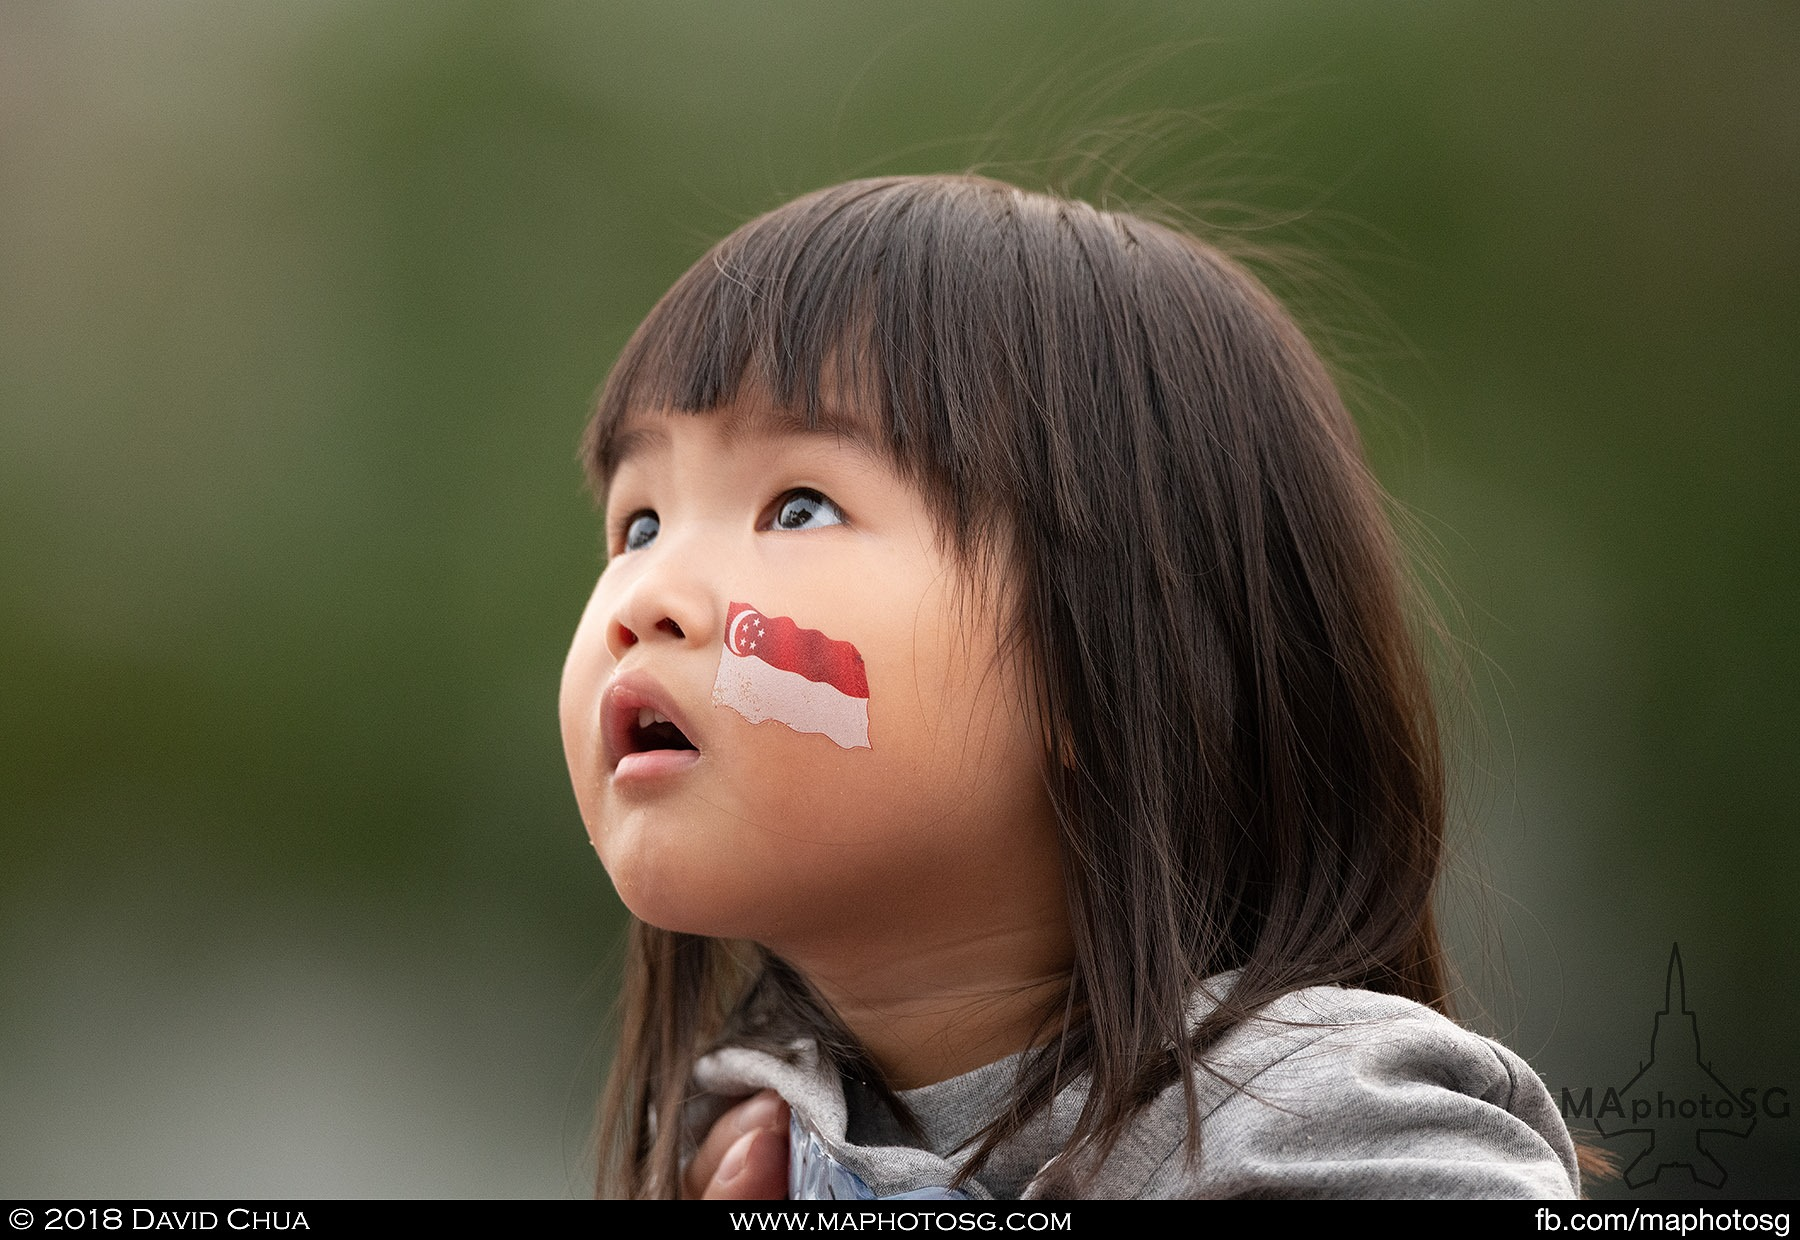 29. A young girl mesmerised by the RSAF aerial display.